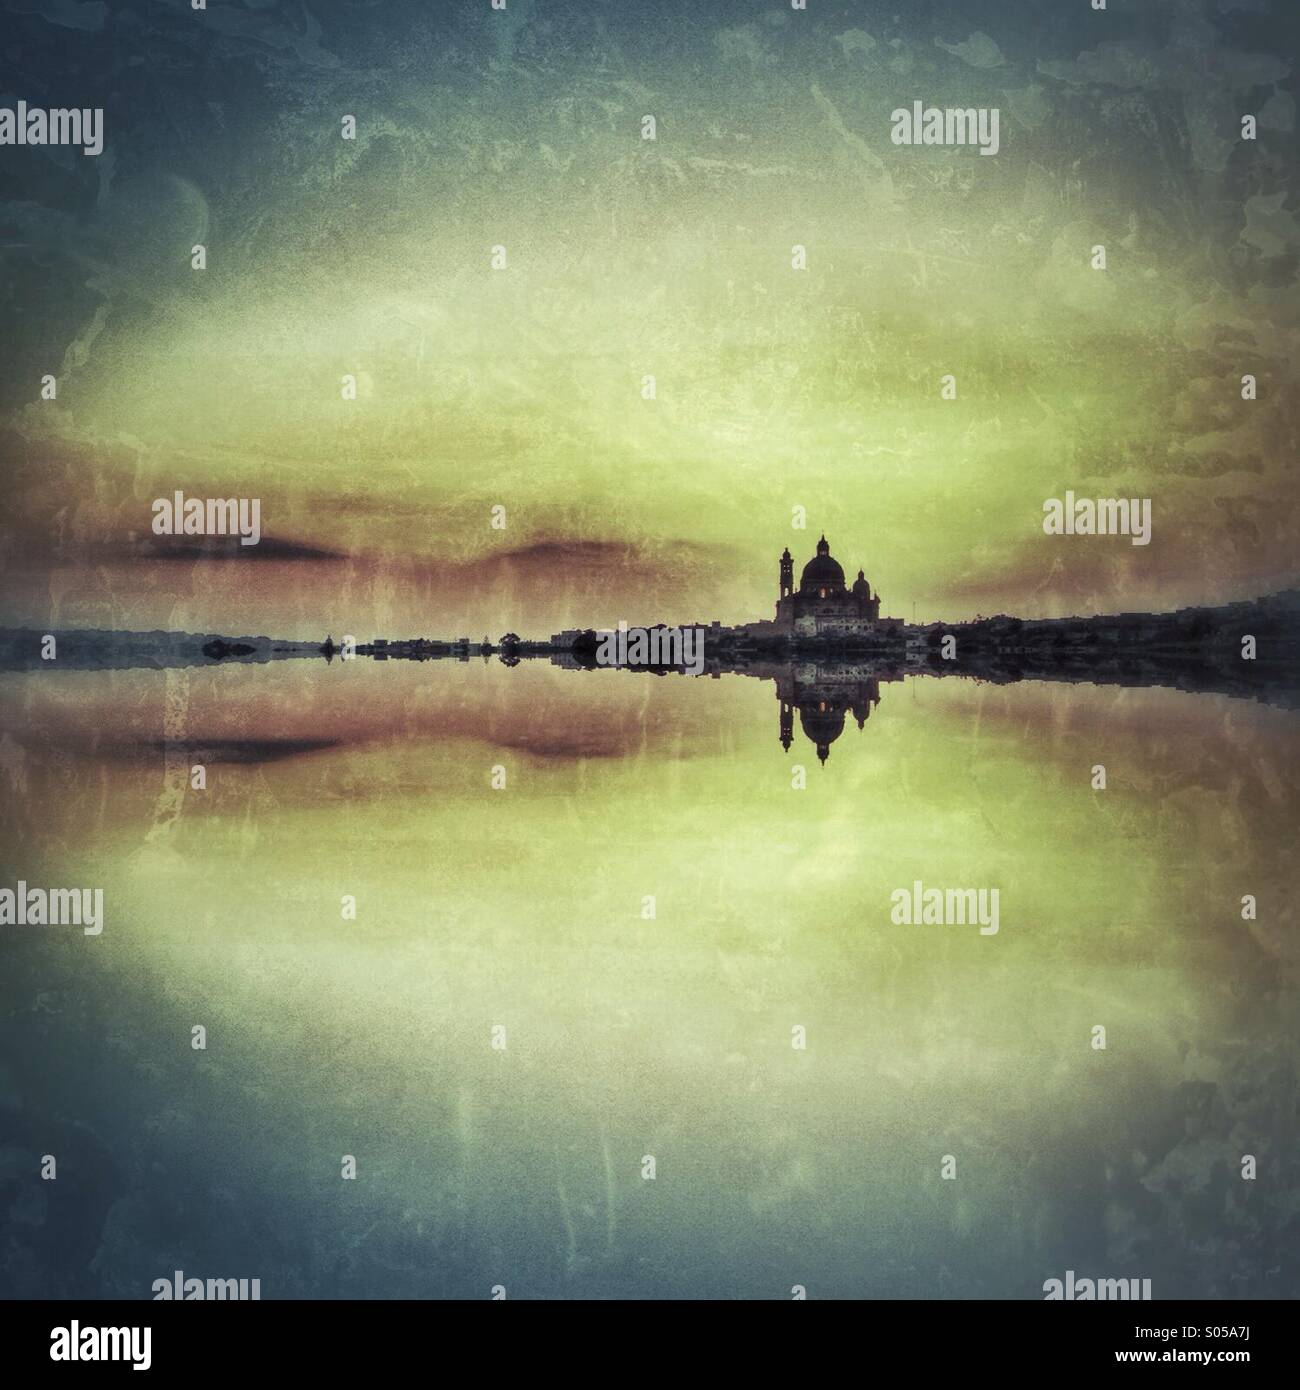 Textured mirrored landscape. - Stock Image